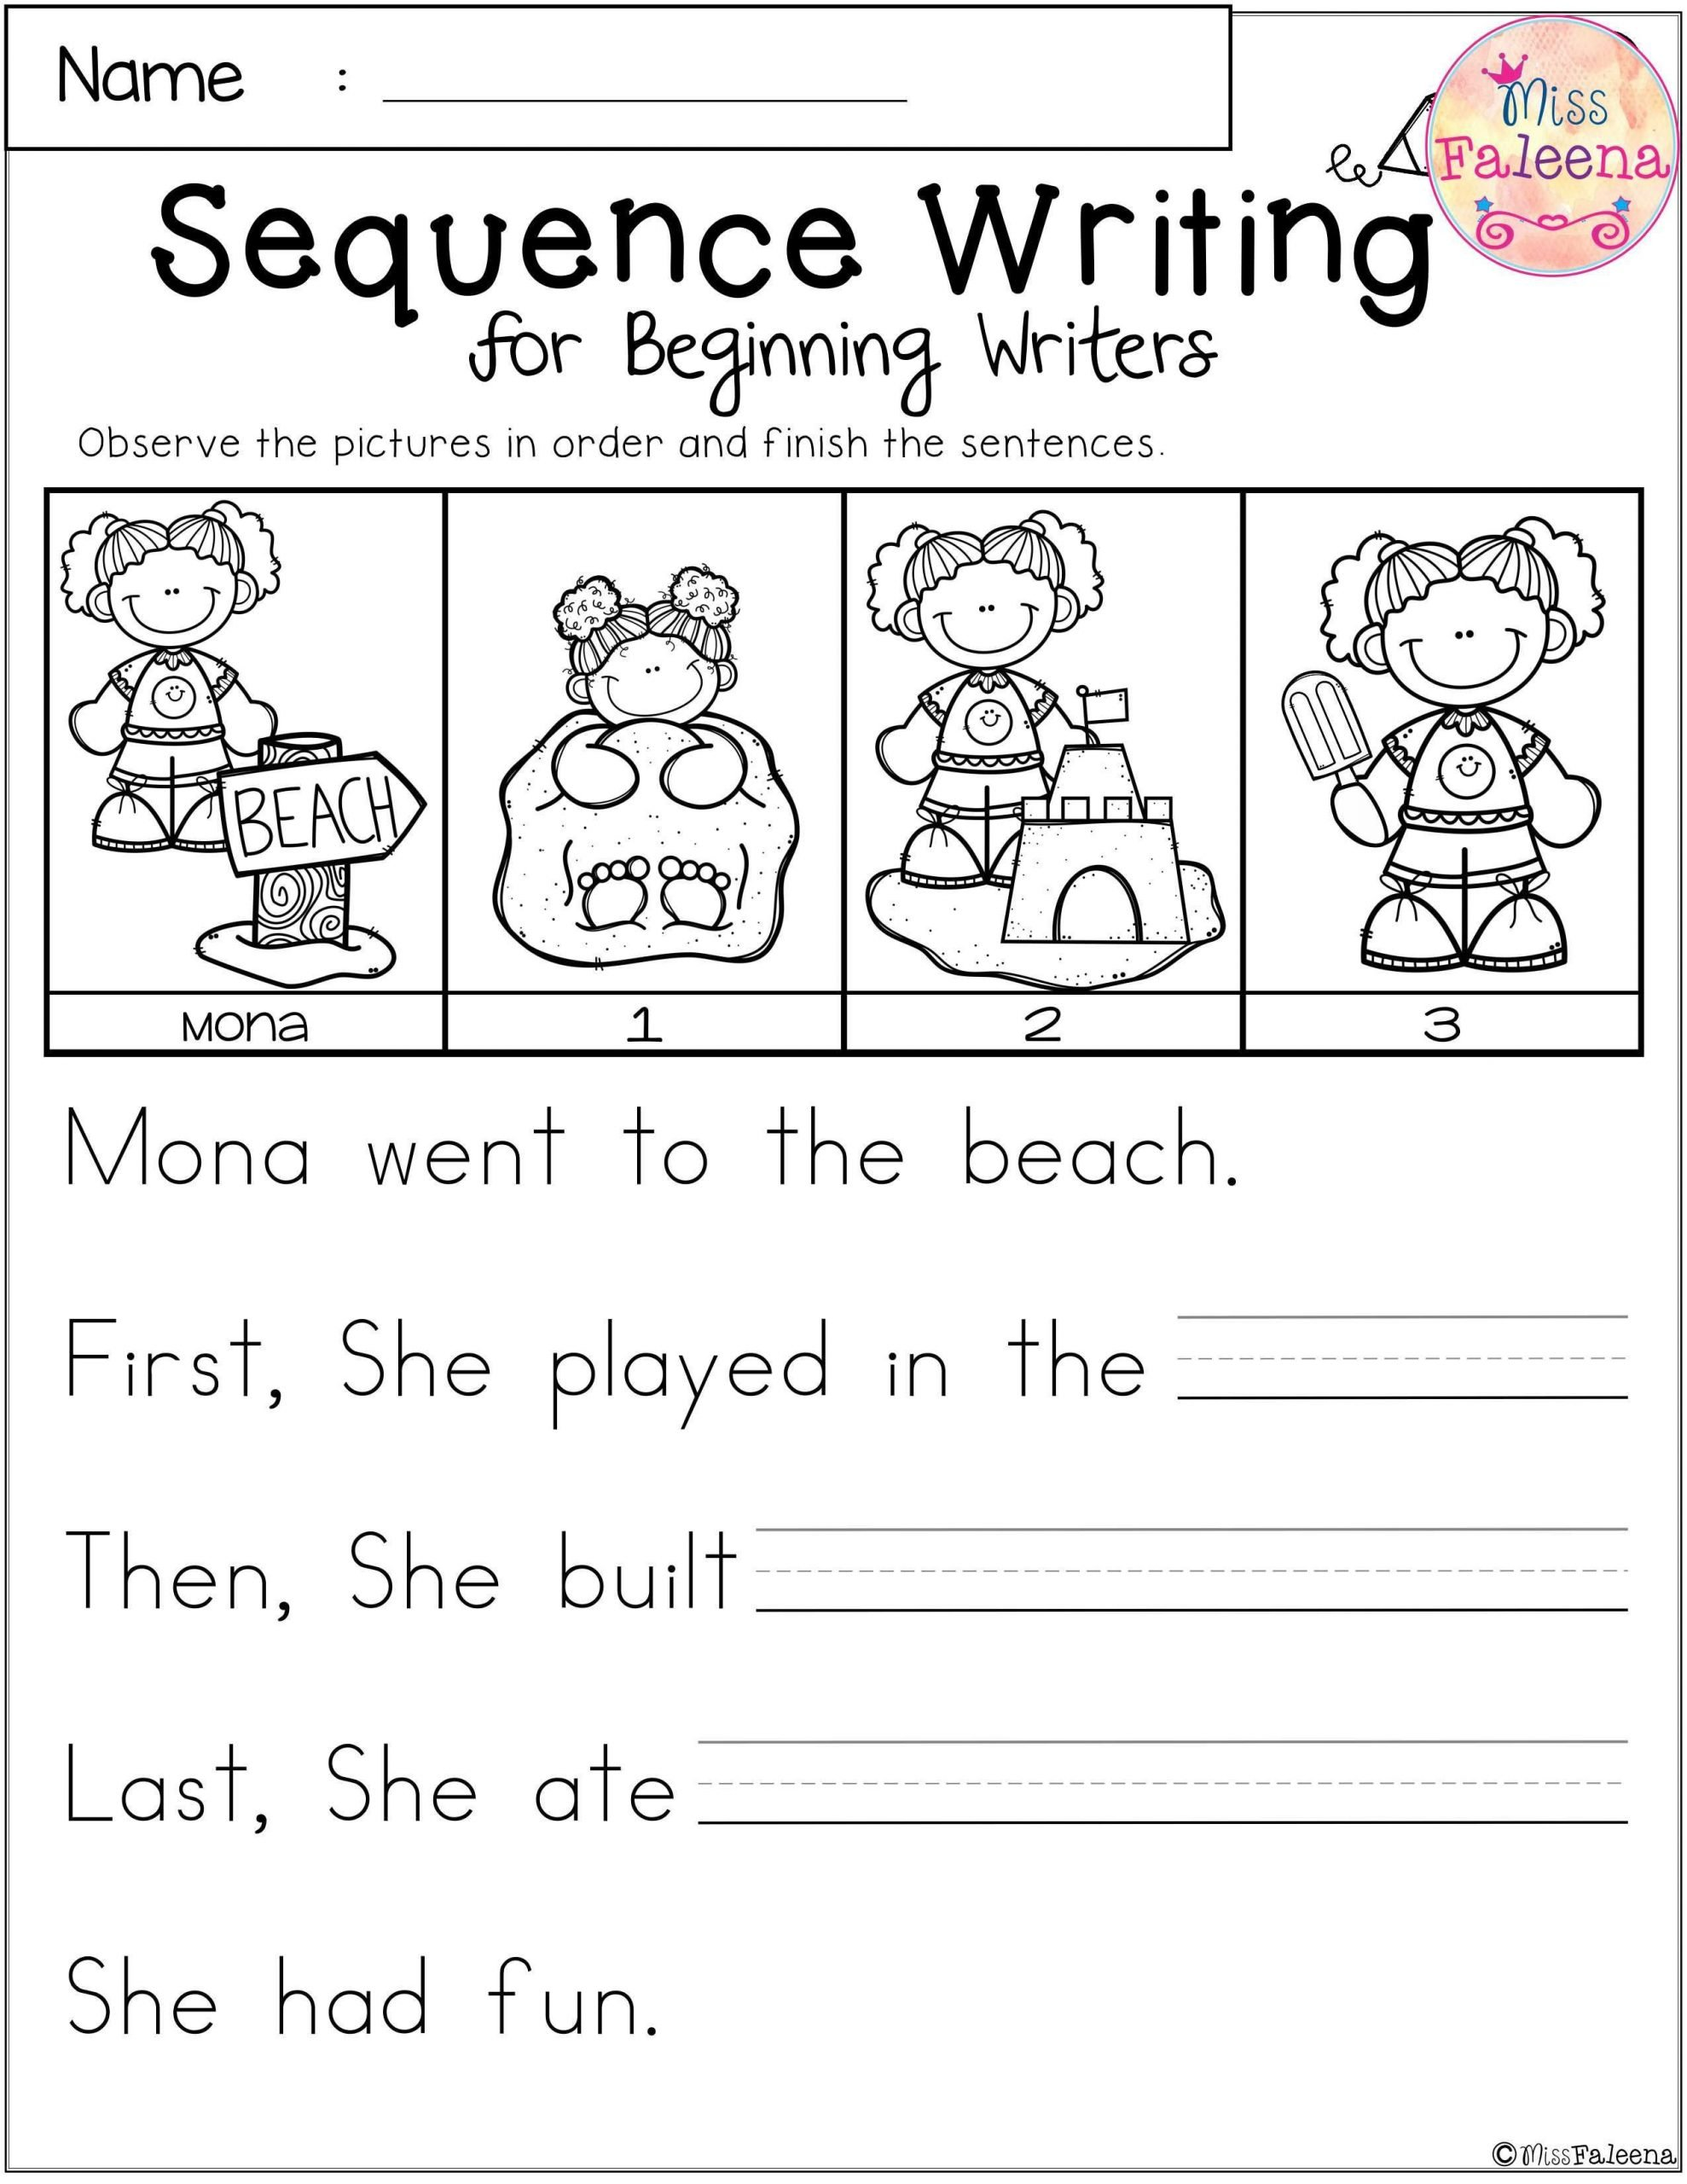 Free Sequence Writing for Beginning Writers